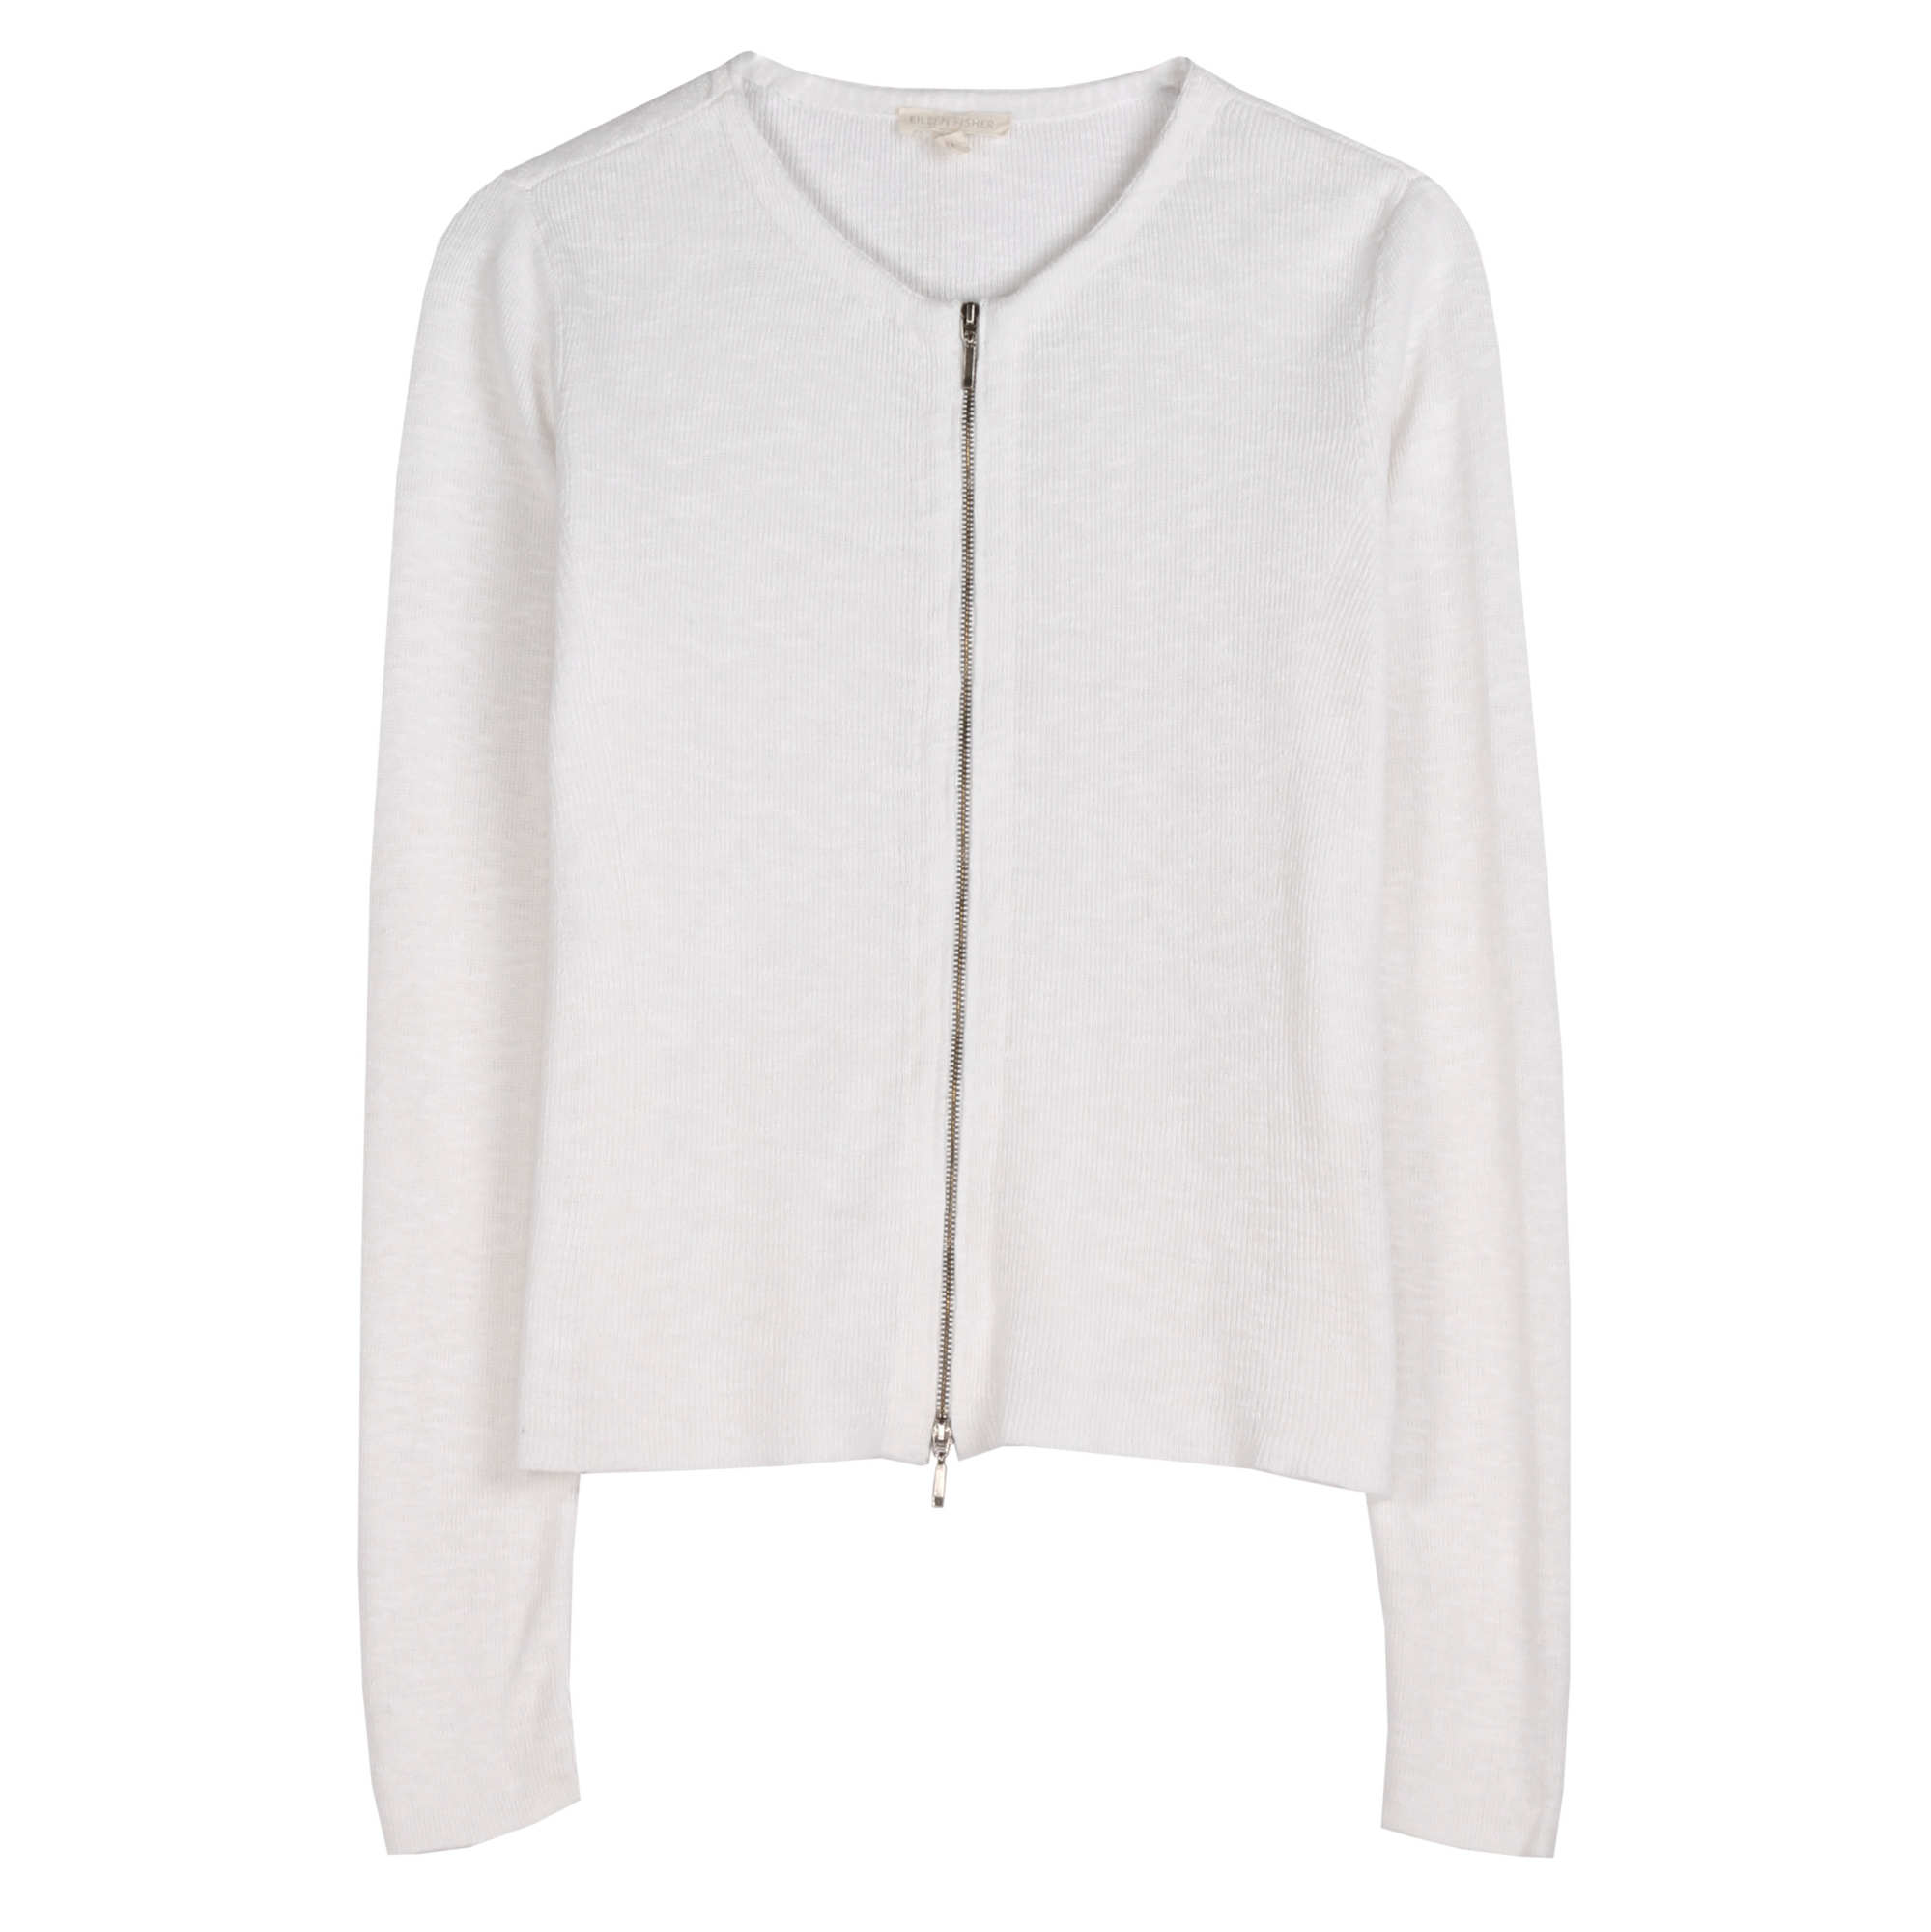 Polished Organic Linen Cotton Jacket